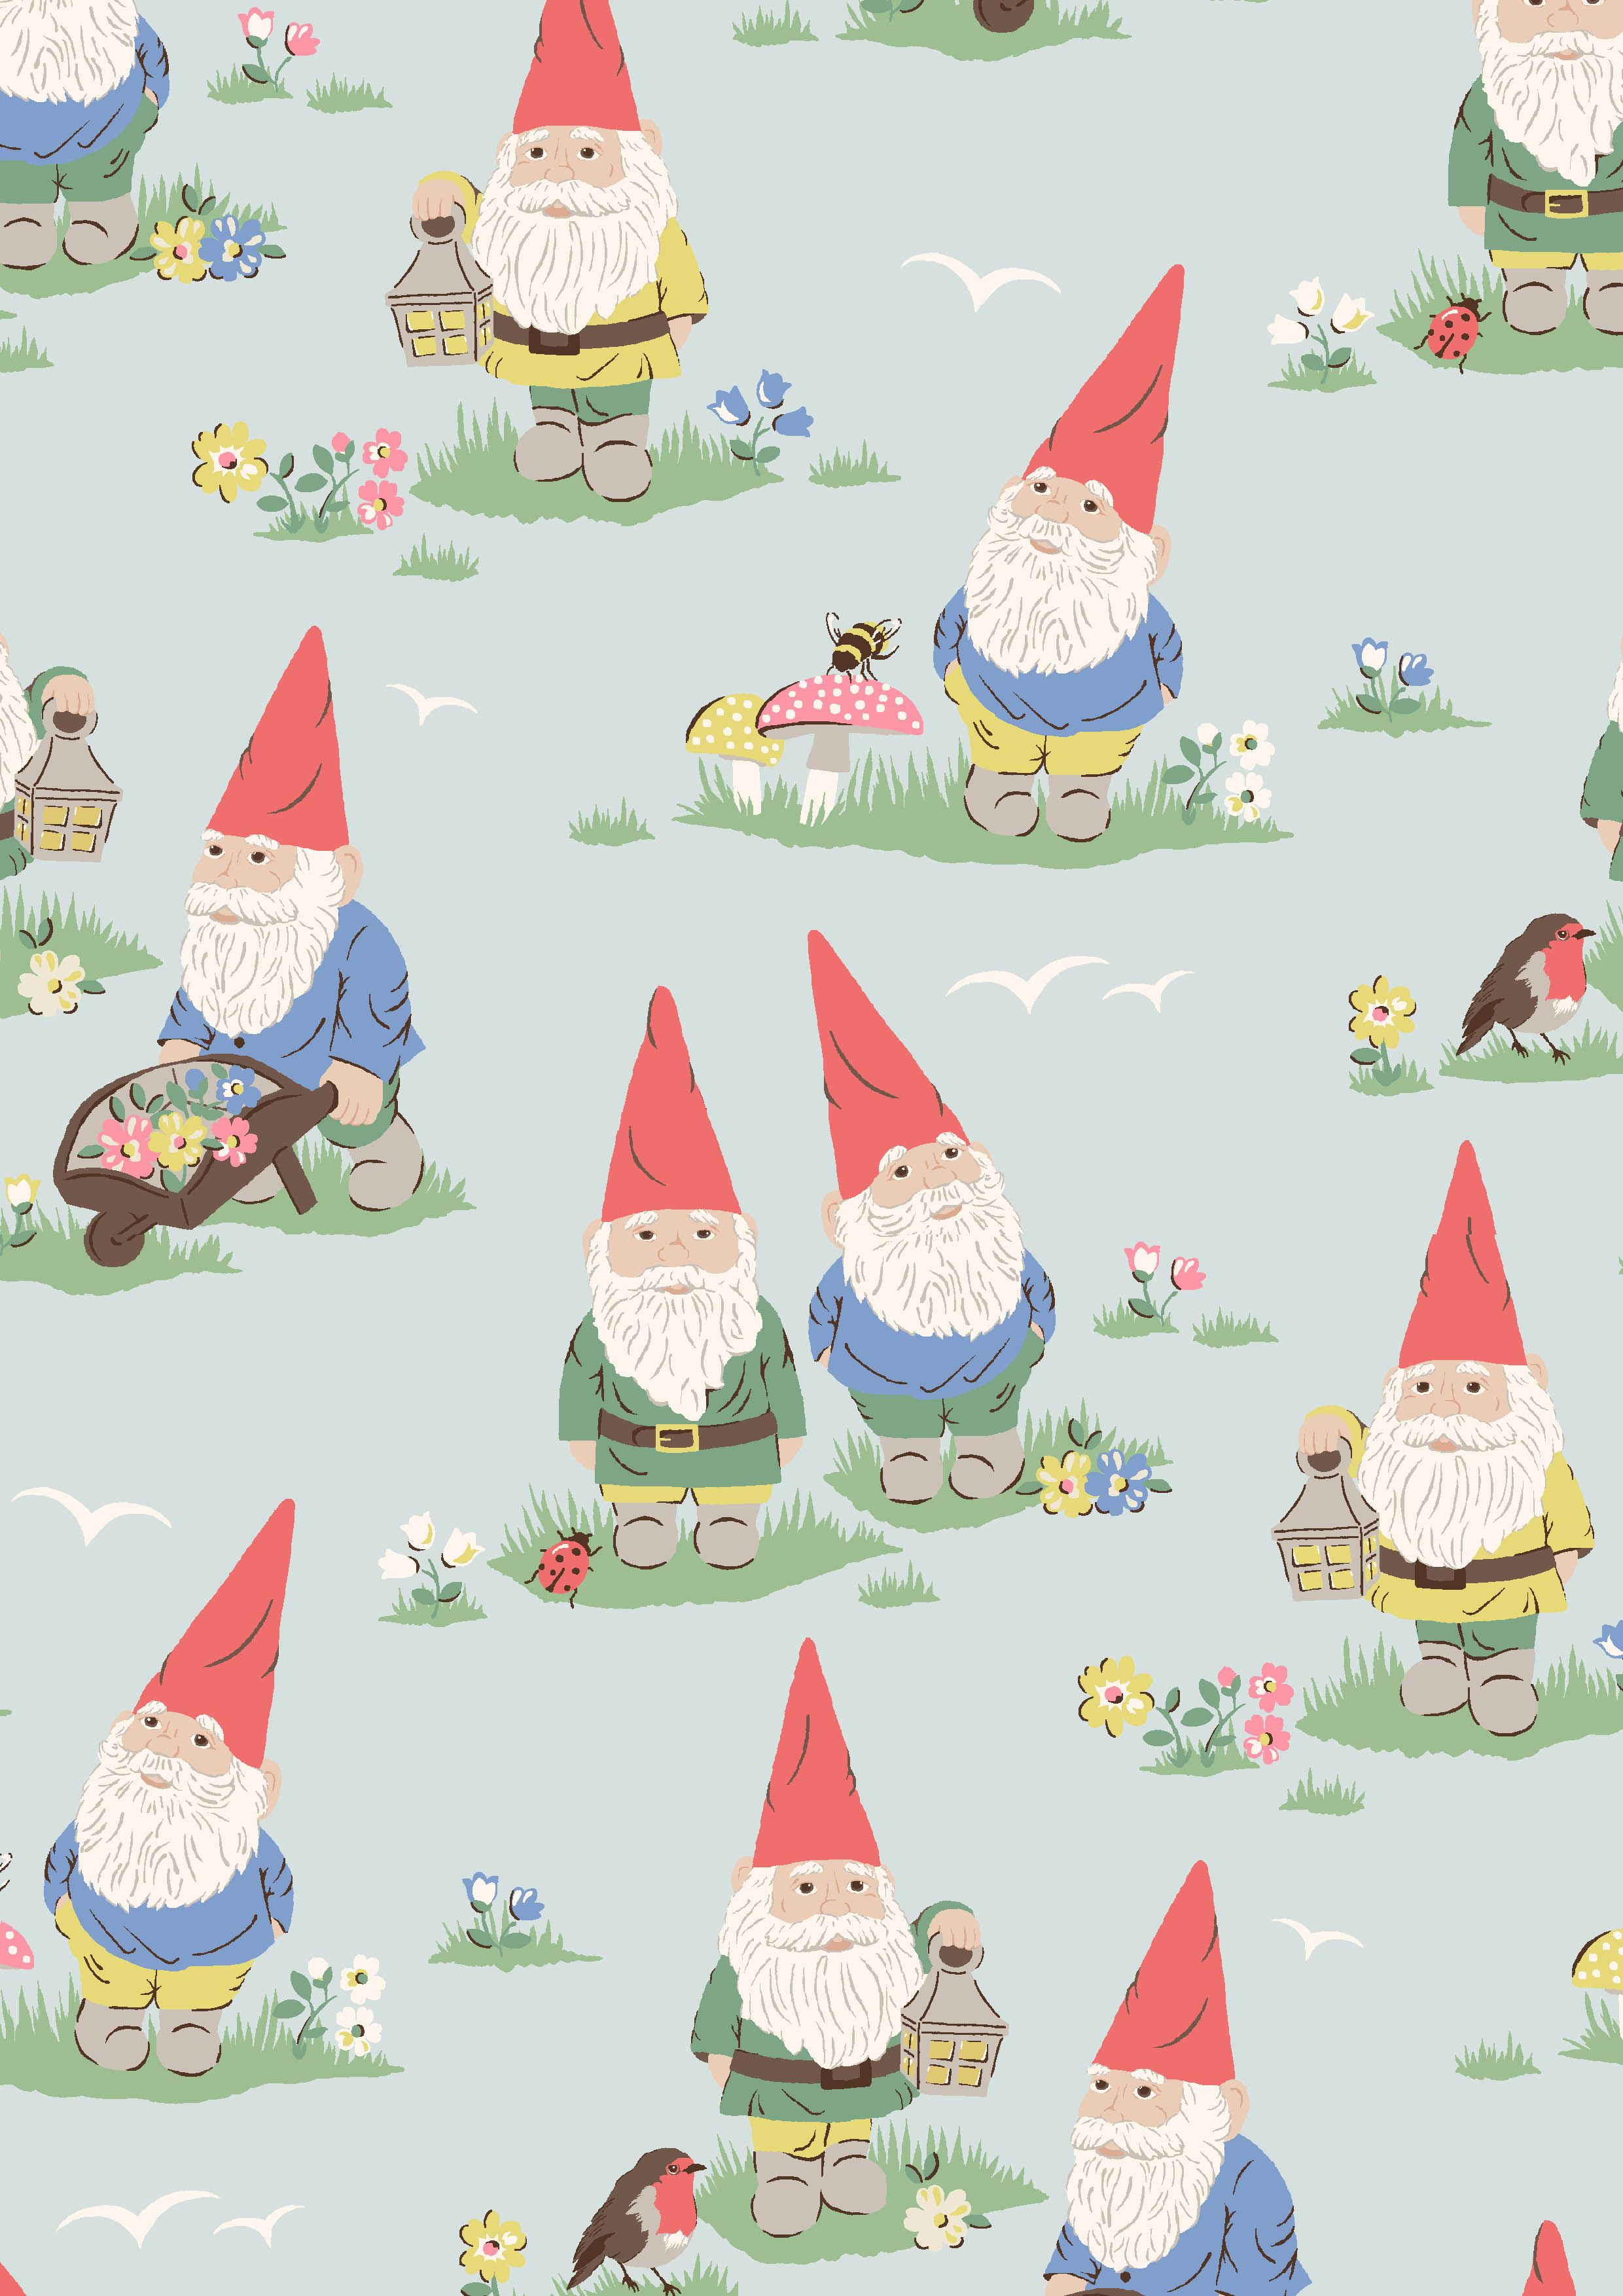 Garden Gnome Wallpapers Top Free Garden Gnome Backgrounds